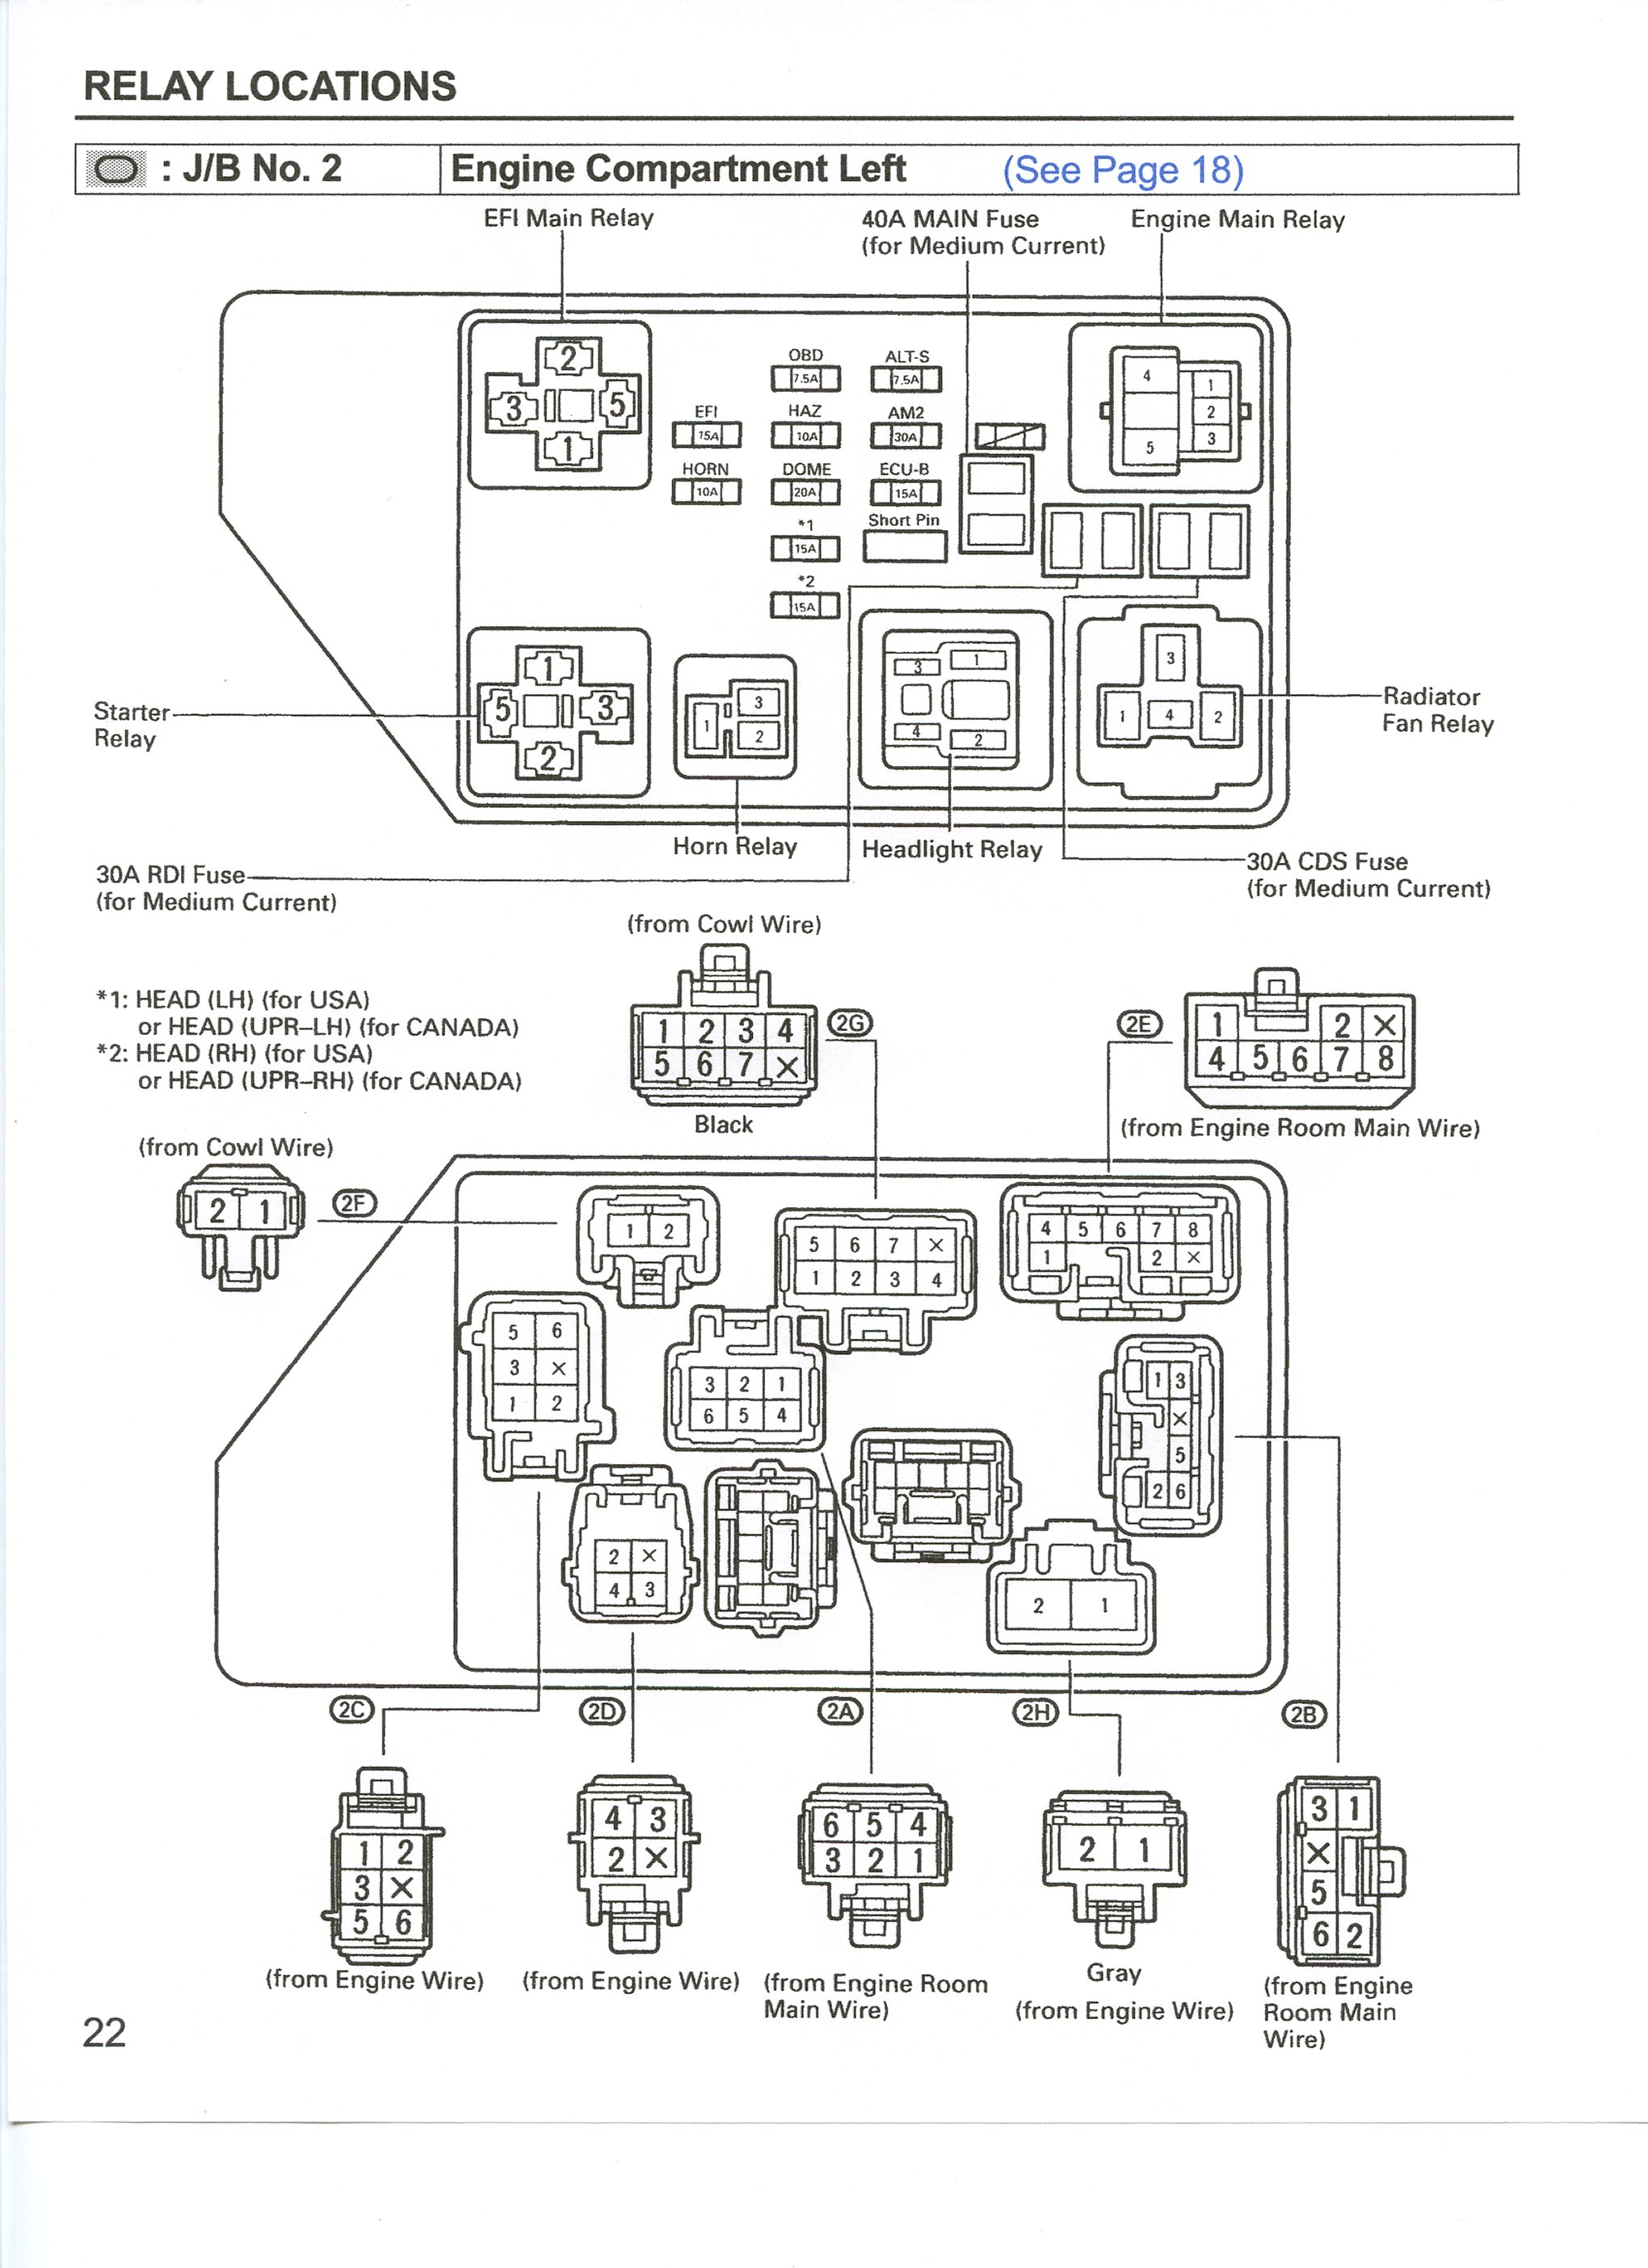 1990 toyota celica fuse box diagram OCNIlgW toyota prius fuse box toyota matrix fuse box \u2022 free wiring 2003 toyota celica fuse box diagram at crackthecode.co